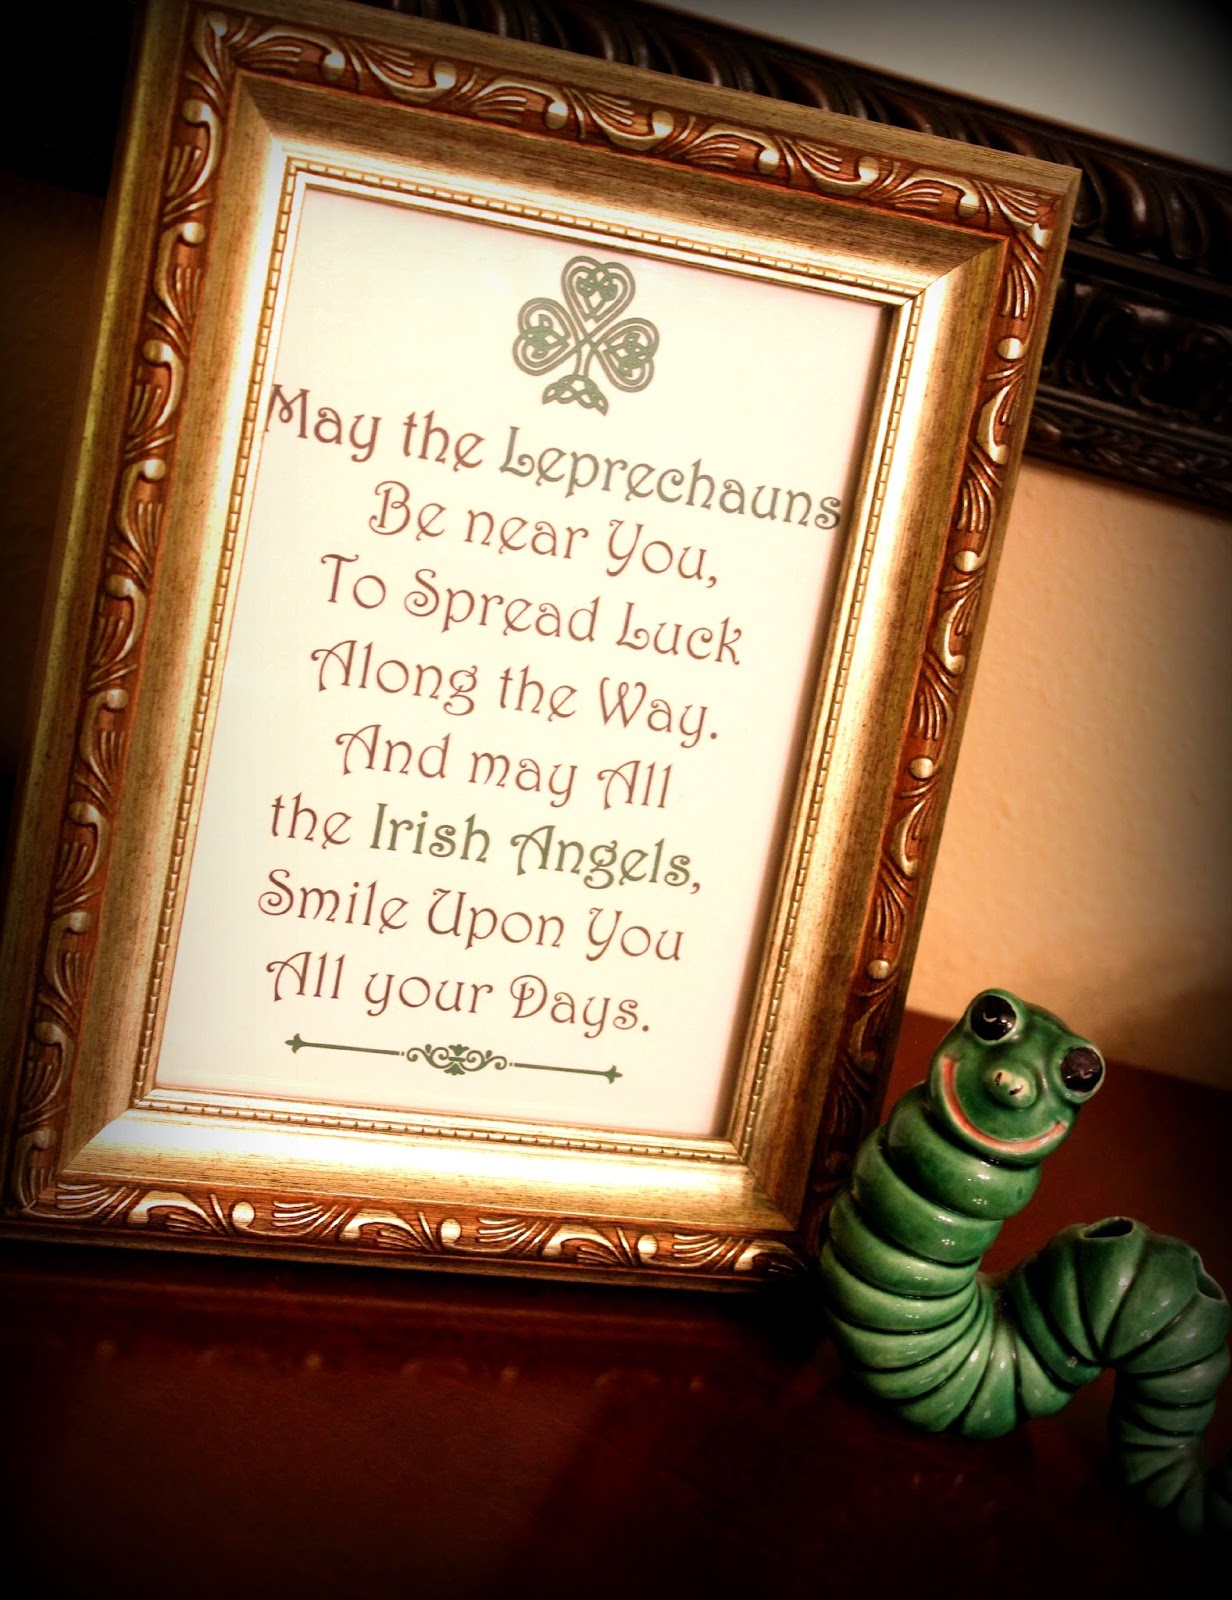 Irish Blessing, Irish Angels, Angels, Leprechauns, Ireland, Printables